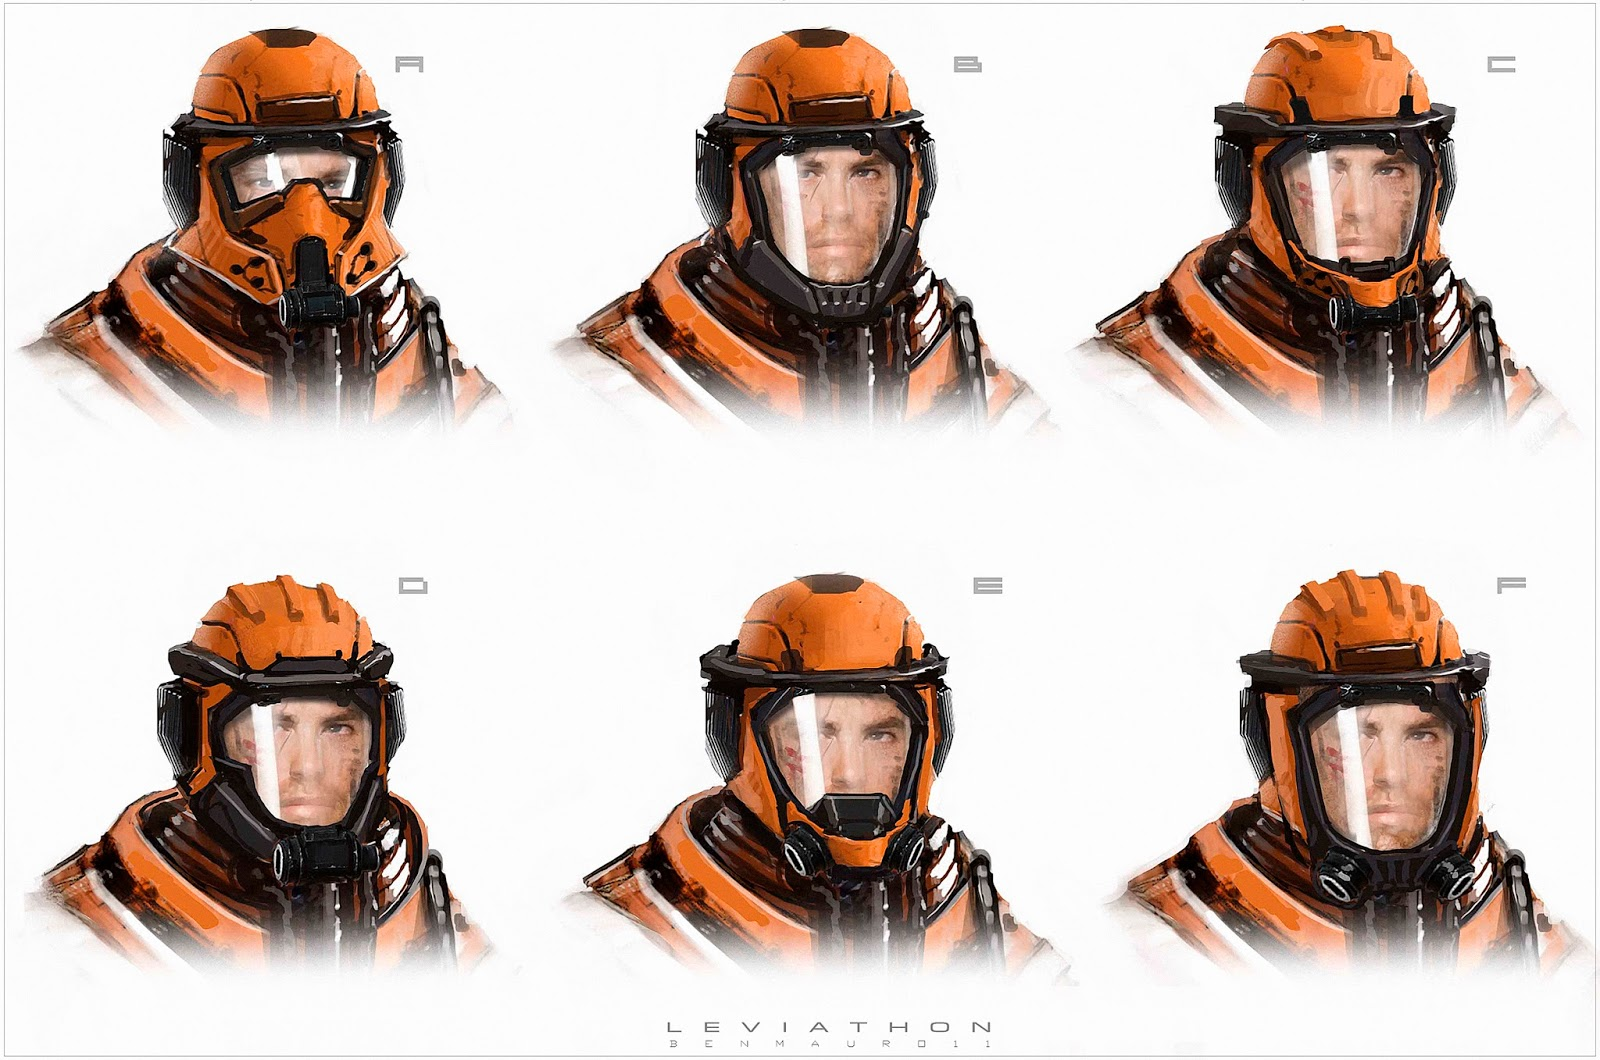 The_Leviathan_Concept_Art_Ben_Mauro_helmet_variants